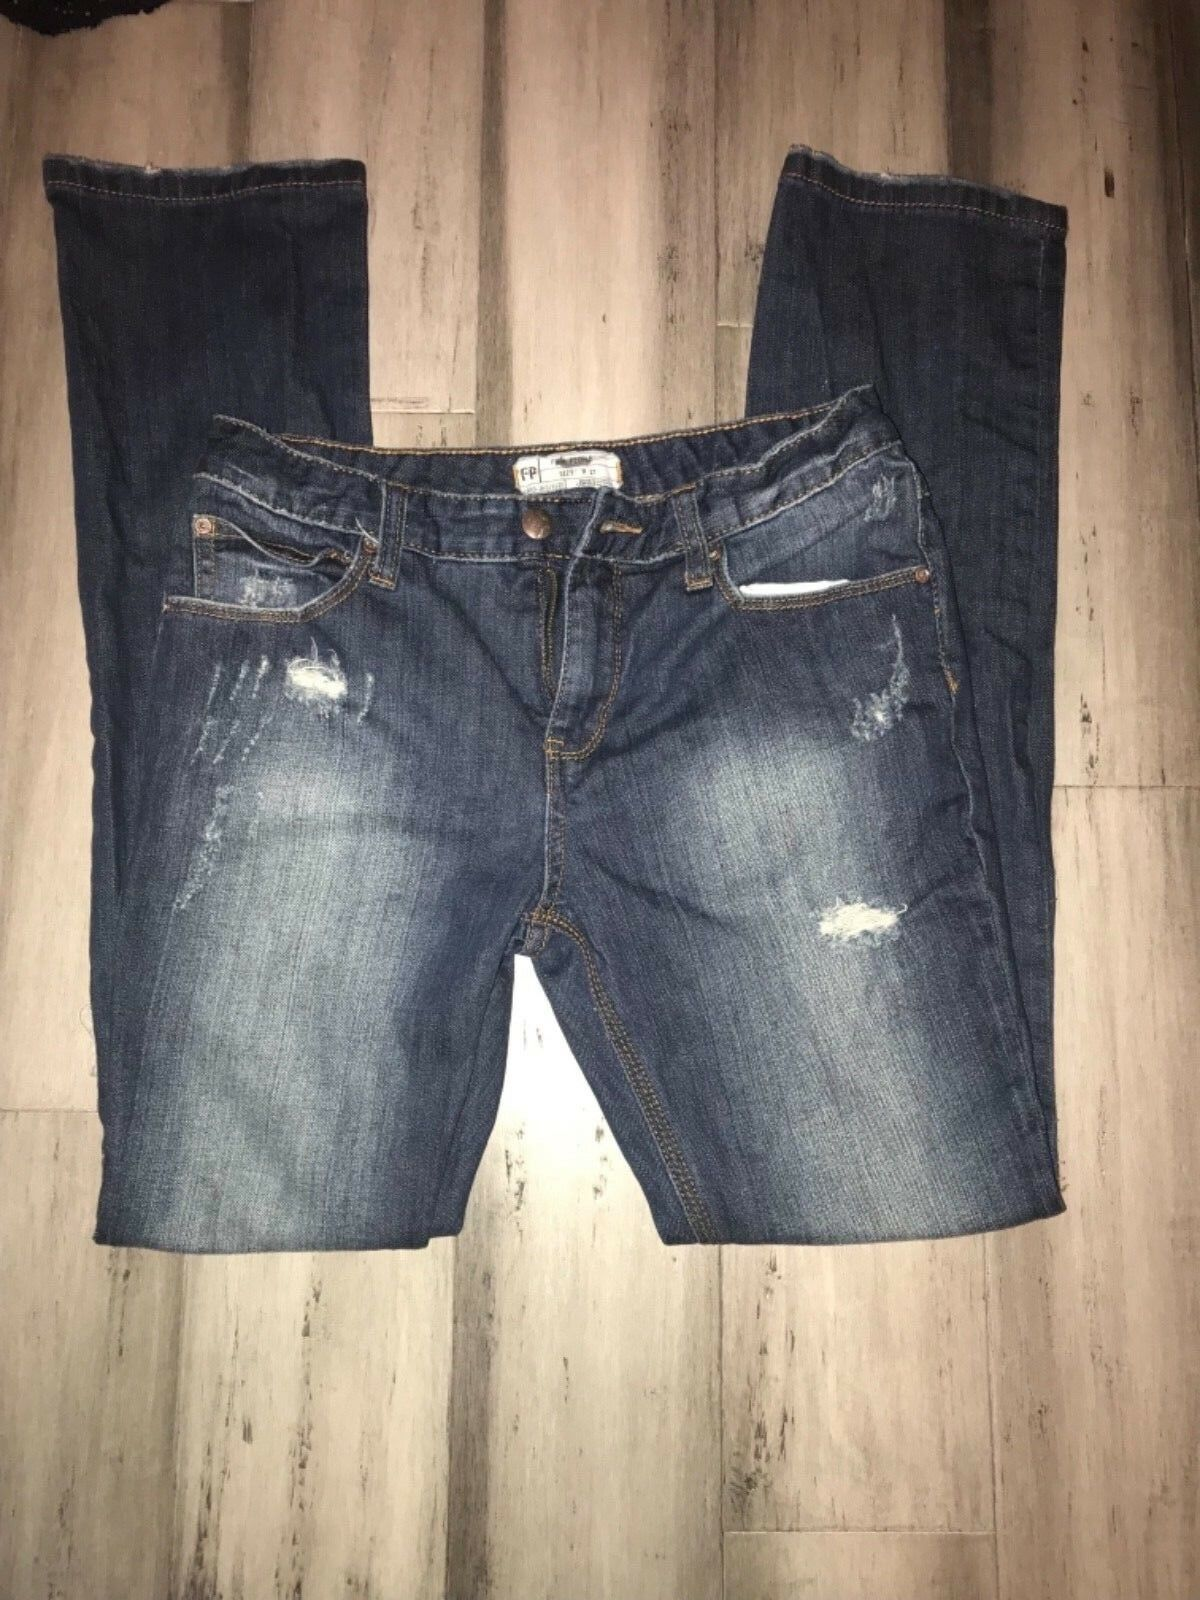 Free People Distressed Skinny Jeans Women's Size 27